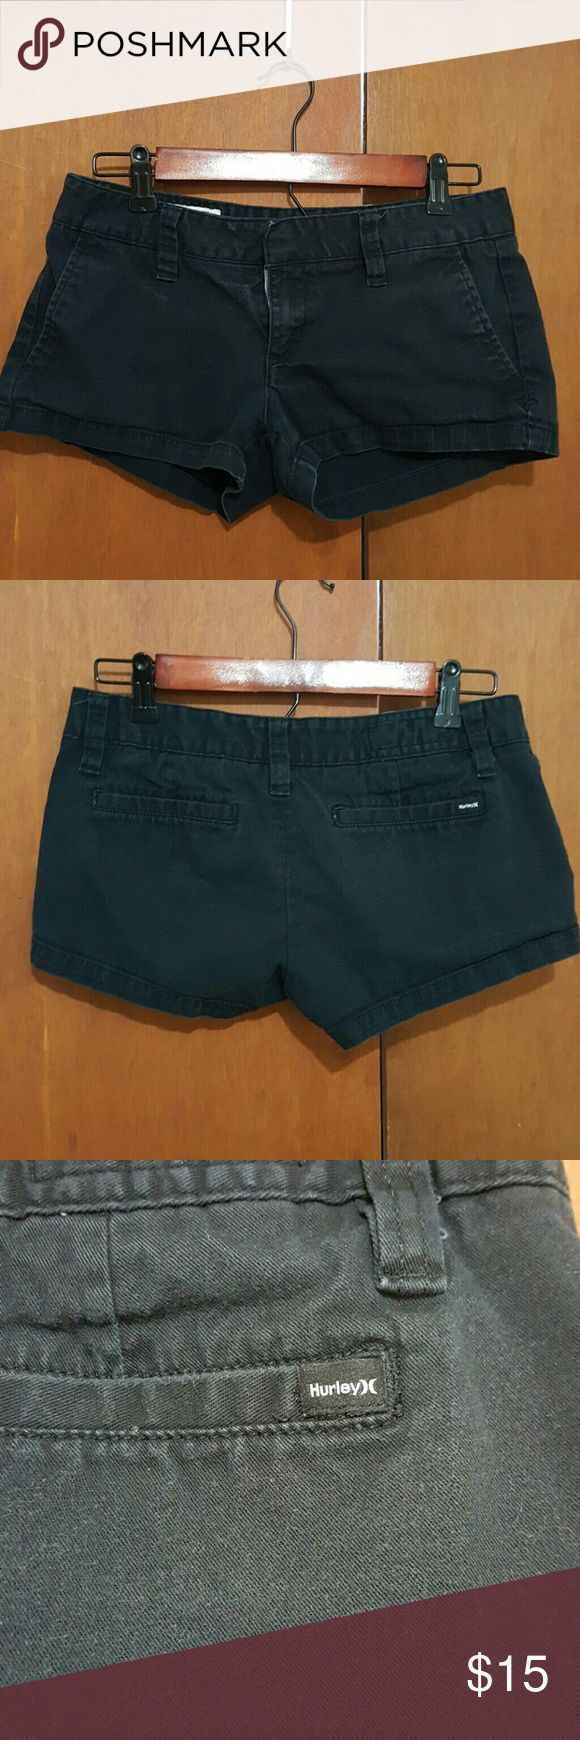 Hurley black juniors shorts. These are cute shorts, gently worn. Hurley Shorts